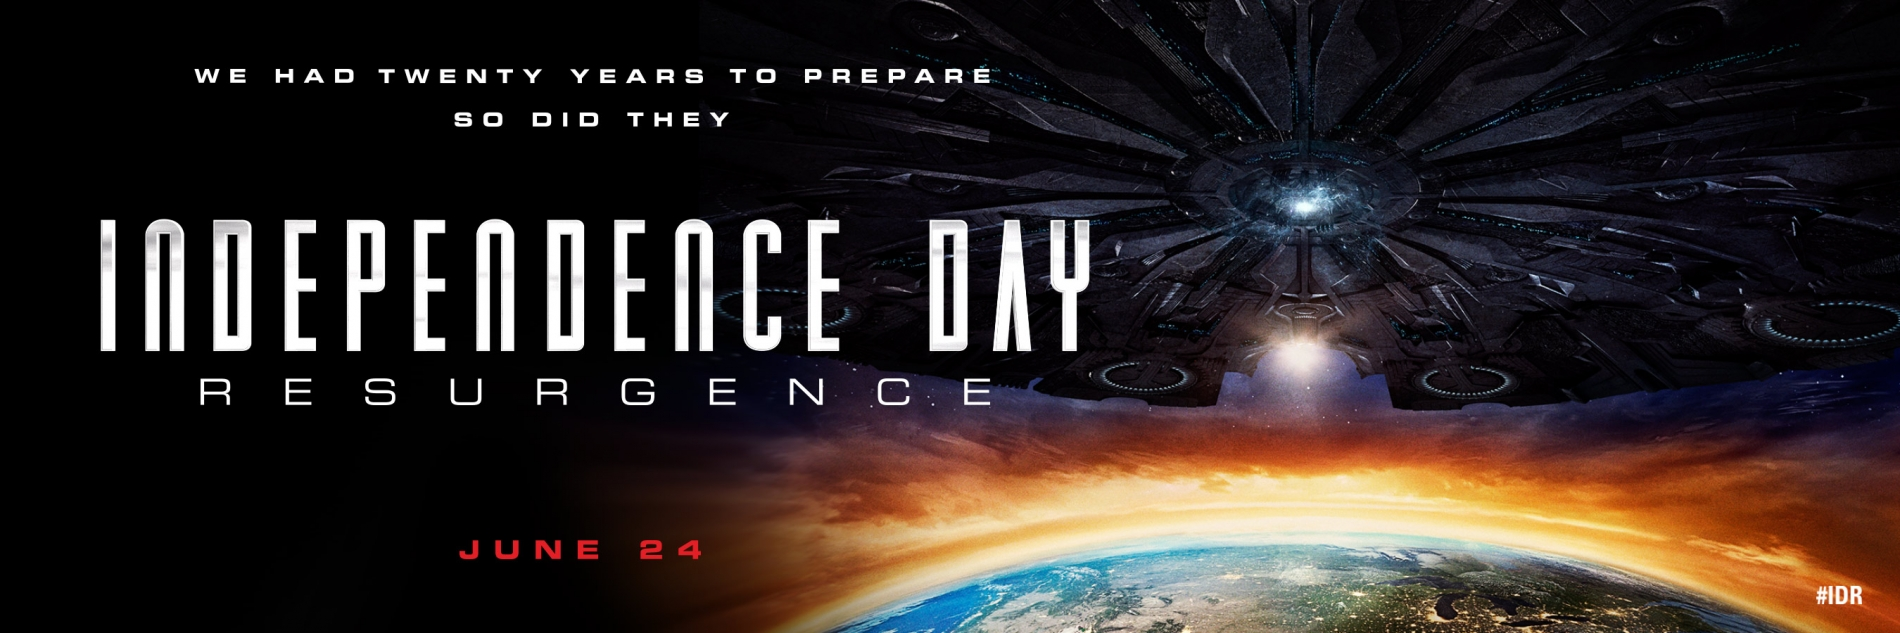 independence day film header v4 front main stage Latest Independence Day Resurgence Trailer Promises A Bigger Spectacle Than Before